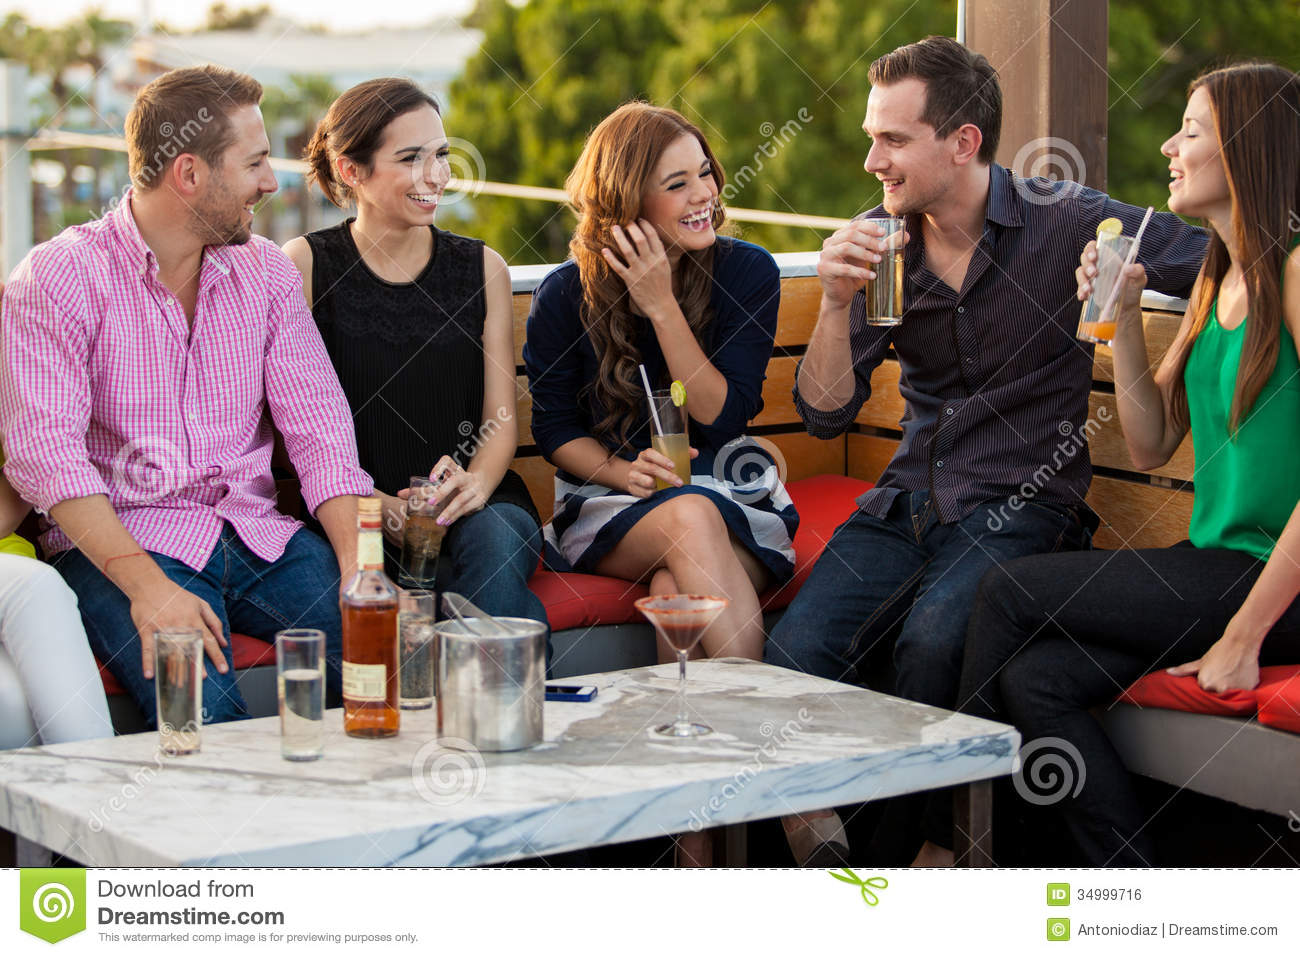 Young Adults Having Drinks At A Bar Stock Photo - Image of ...